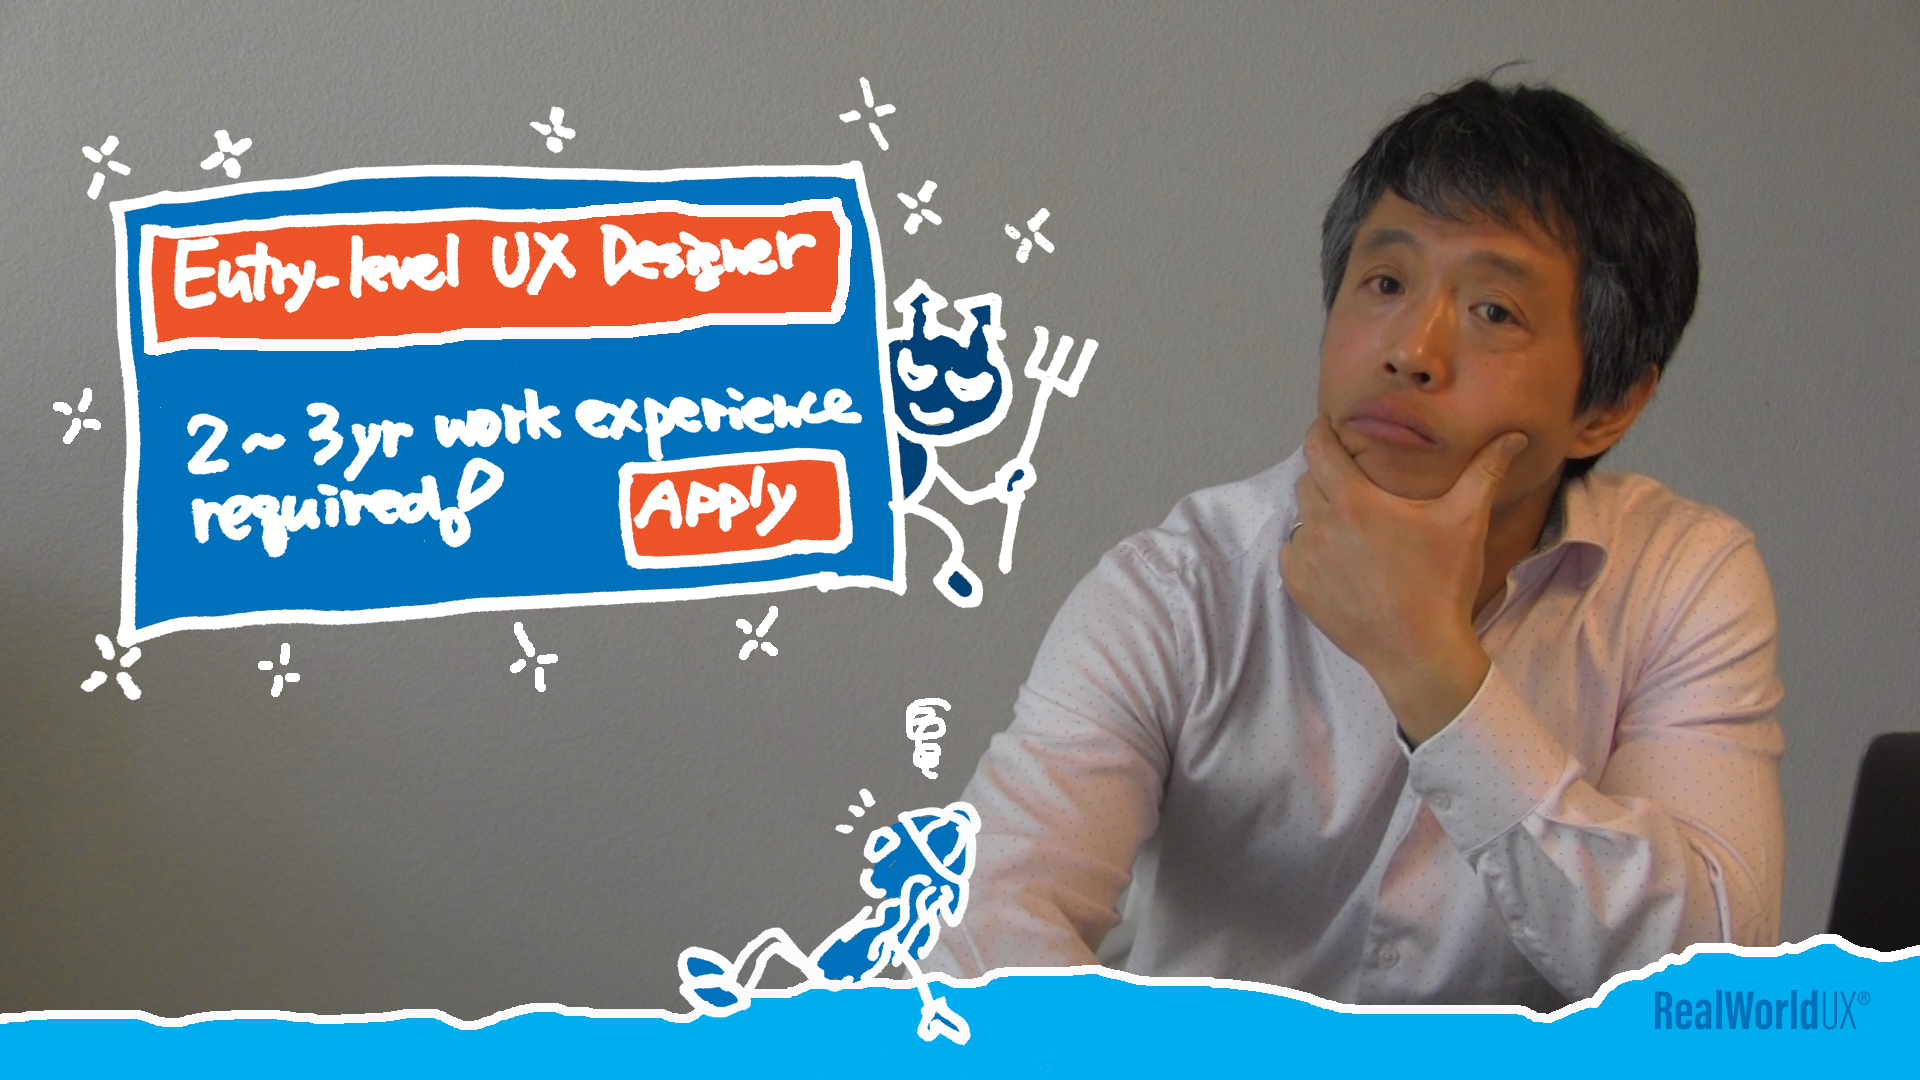 Job posting for an entry-level UX designer says you are required to have 2-3 year work experience.